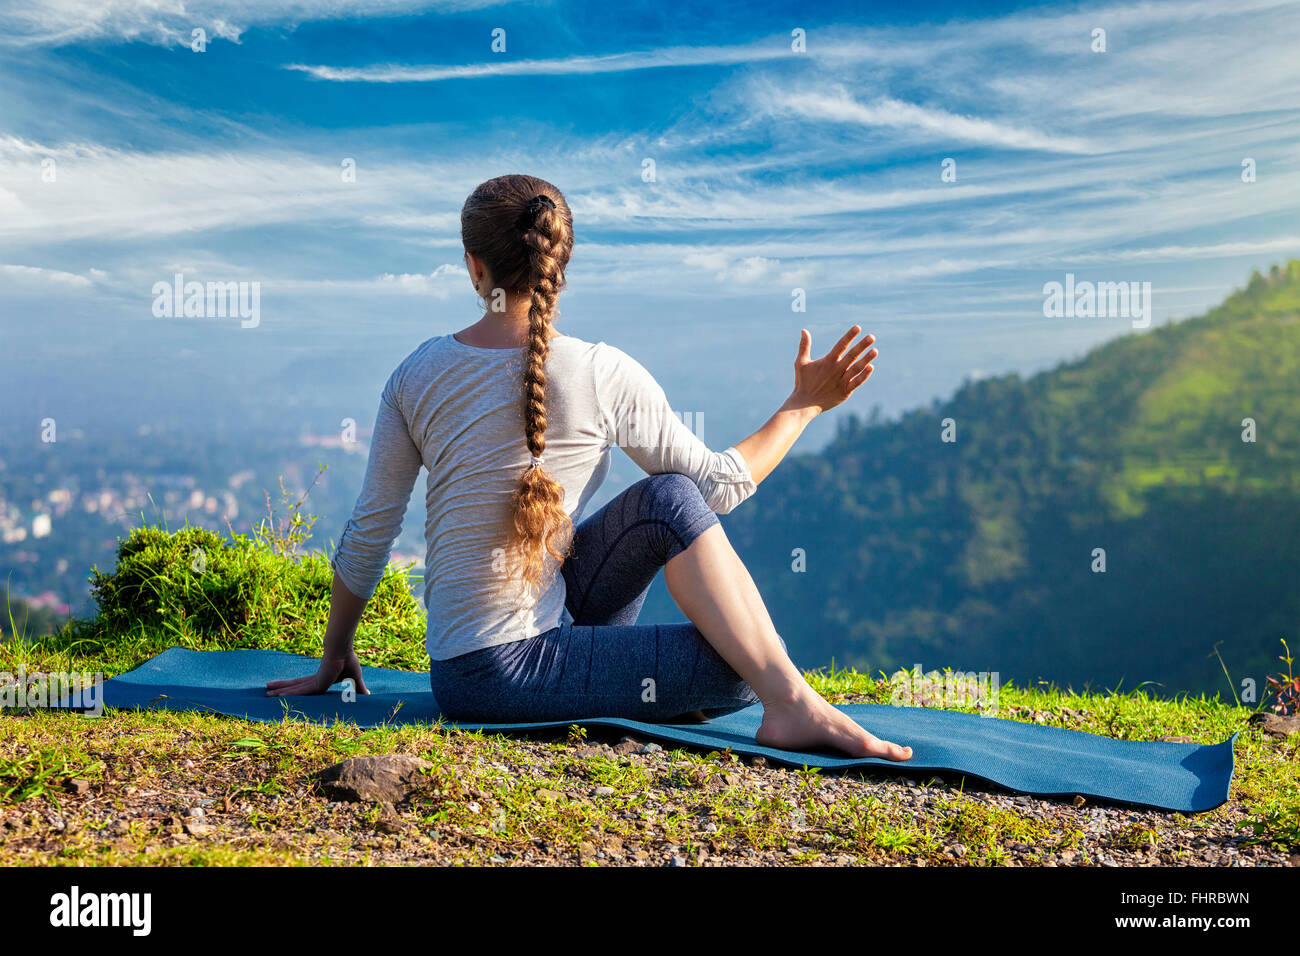 Woman practices yoga asana Marichyasana - Stock Image